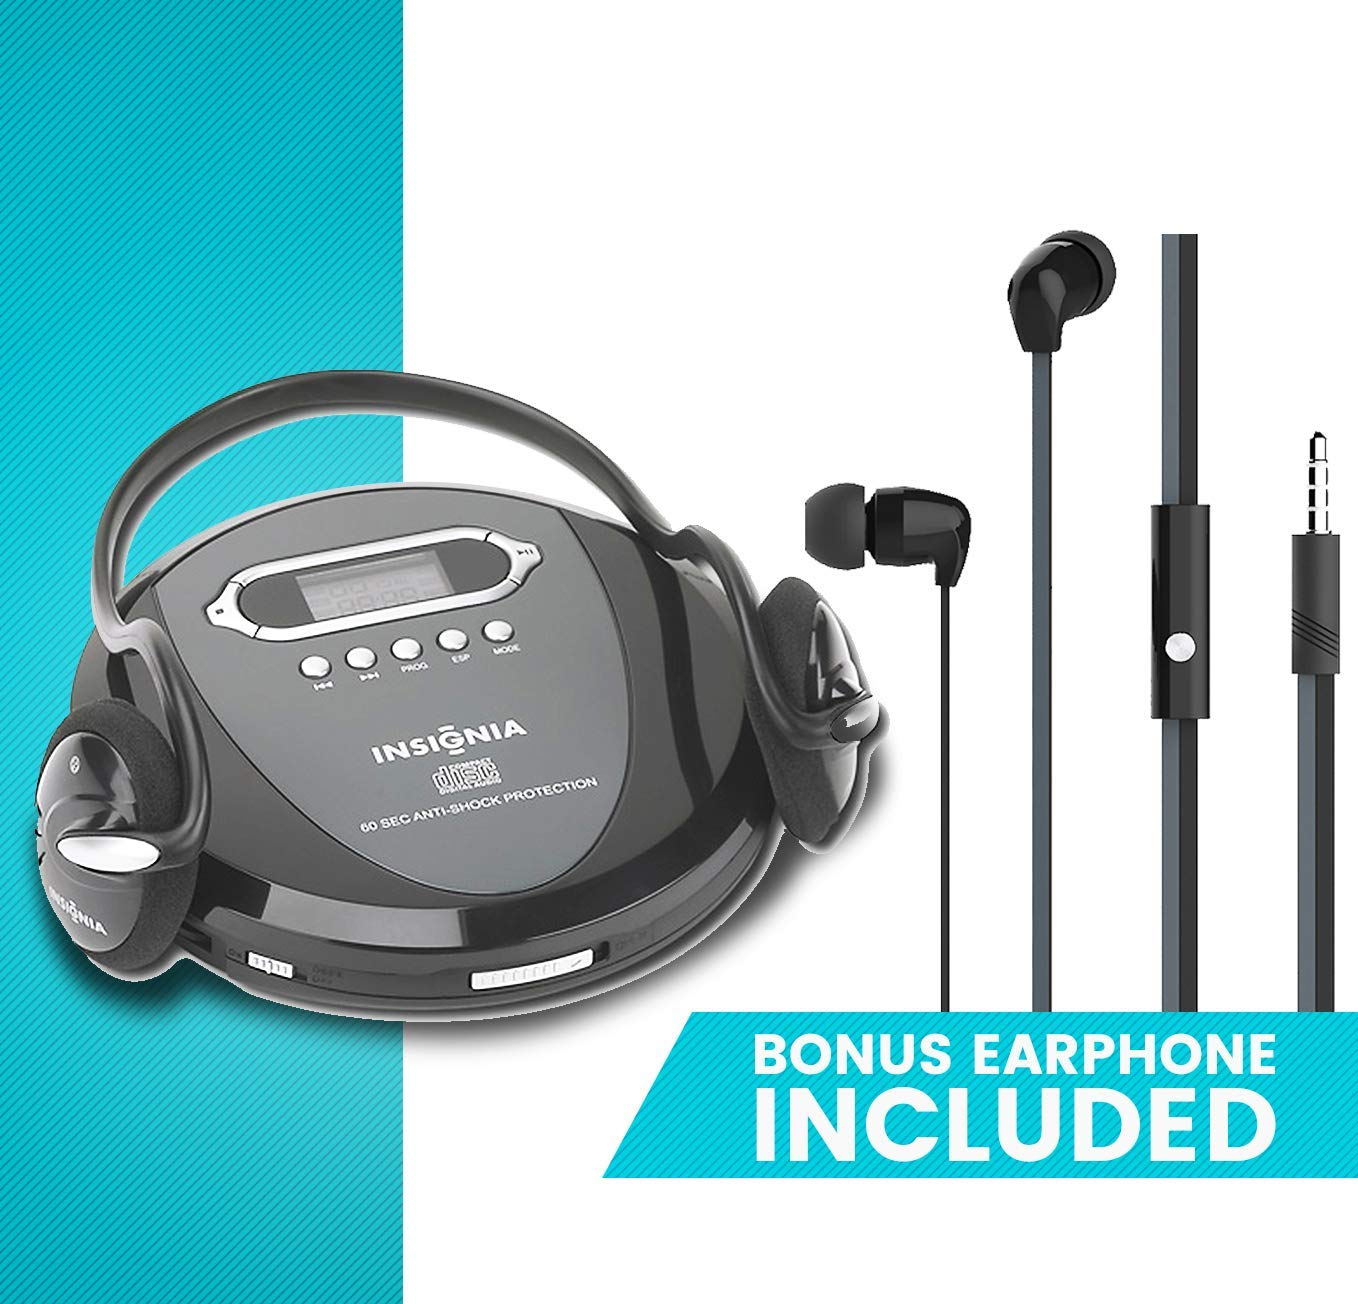 Portable CD Player Headphone & (Earphone NEW) Included - Skip Protection for CD, CD-R, CD-RW Black/Charcoal by Insignia Products (Image #1)